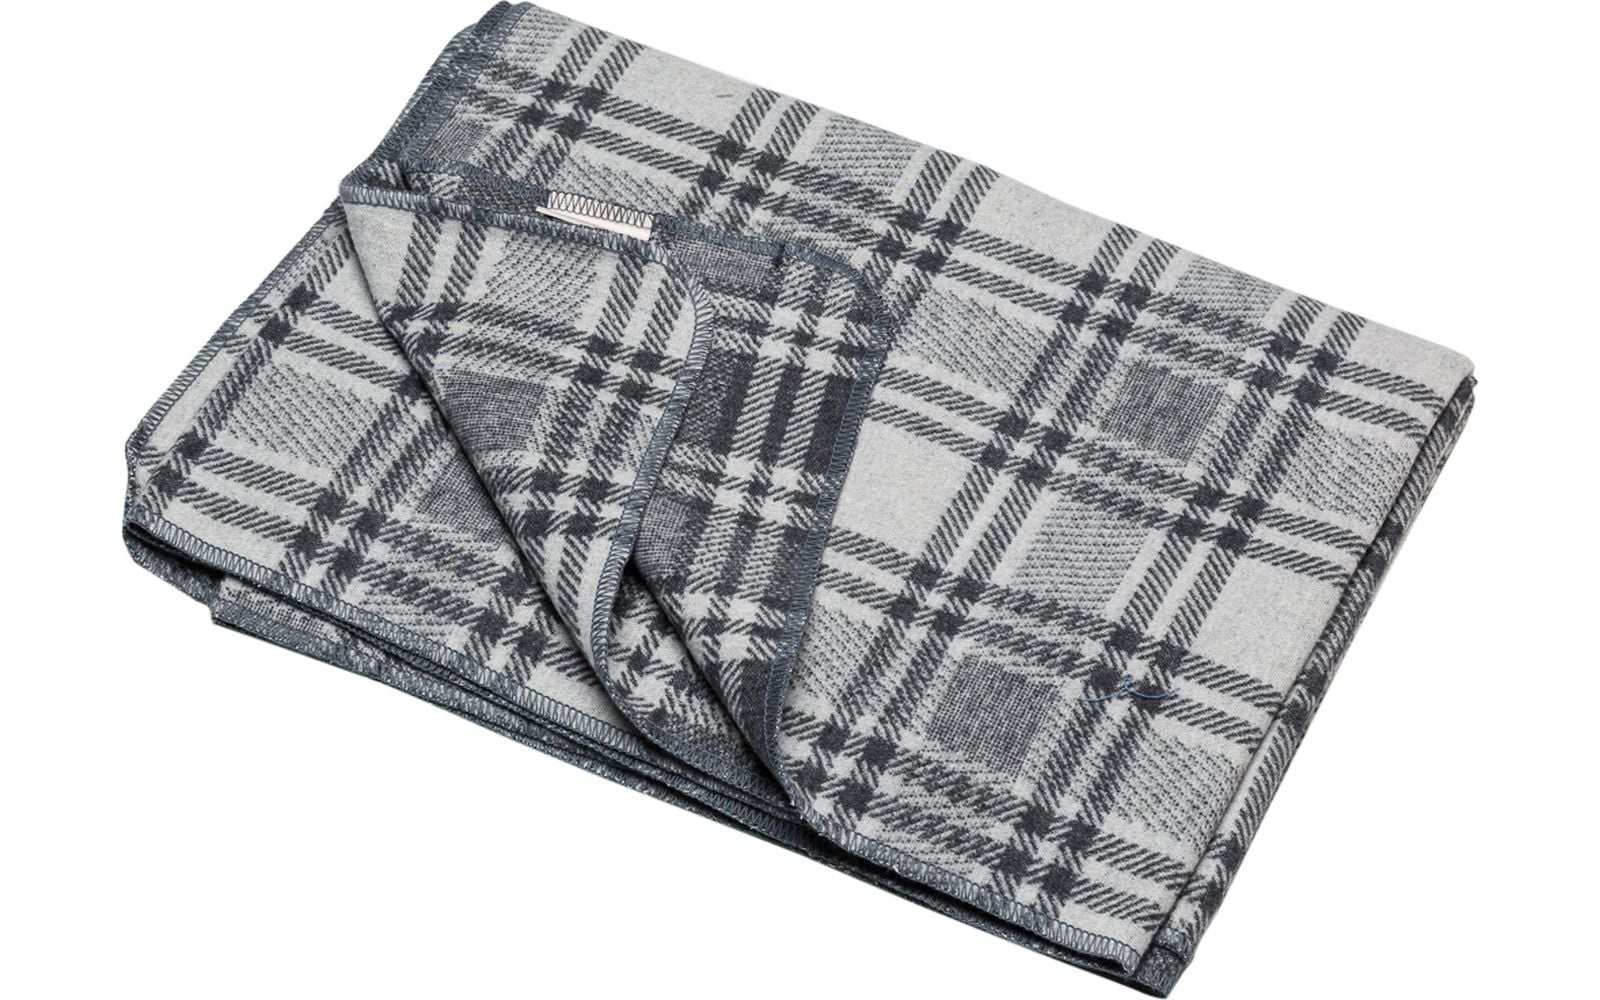 Blanket - Checkered - Charcoal-1